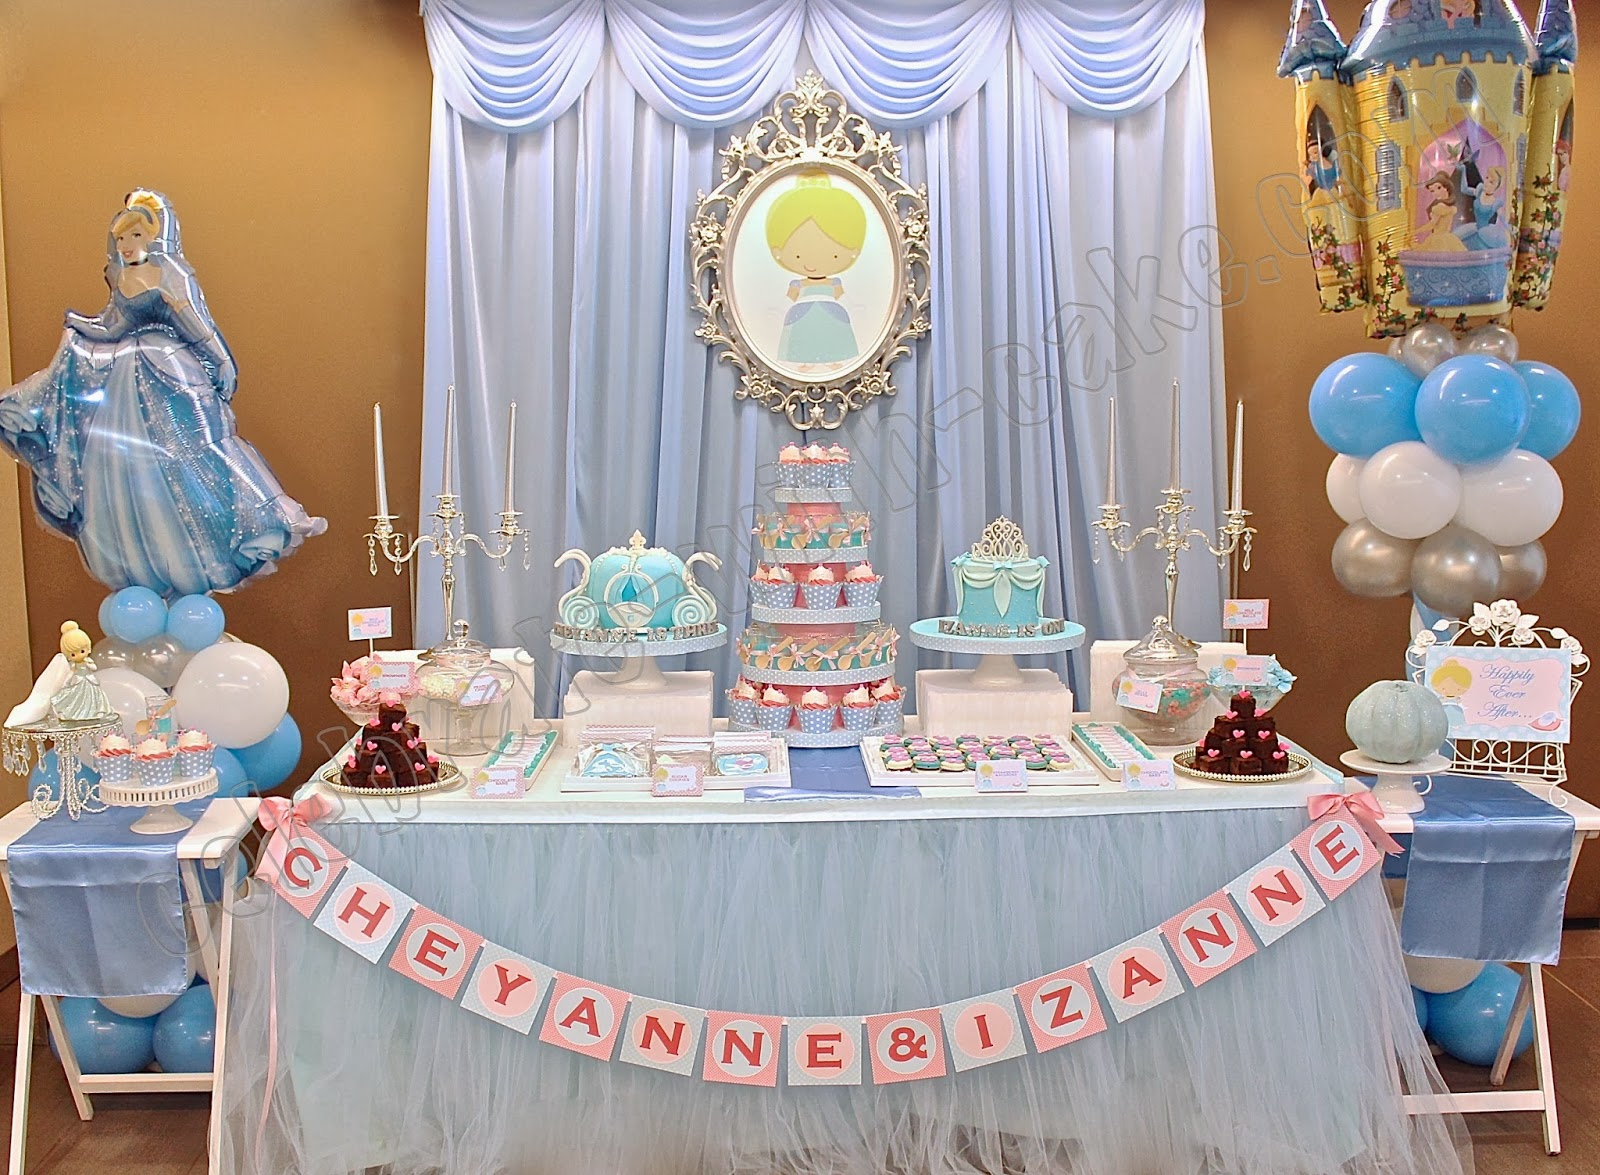 Cinderella Dessert Table Click Post To View More Pictures